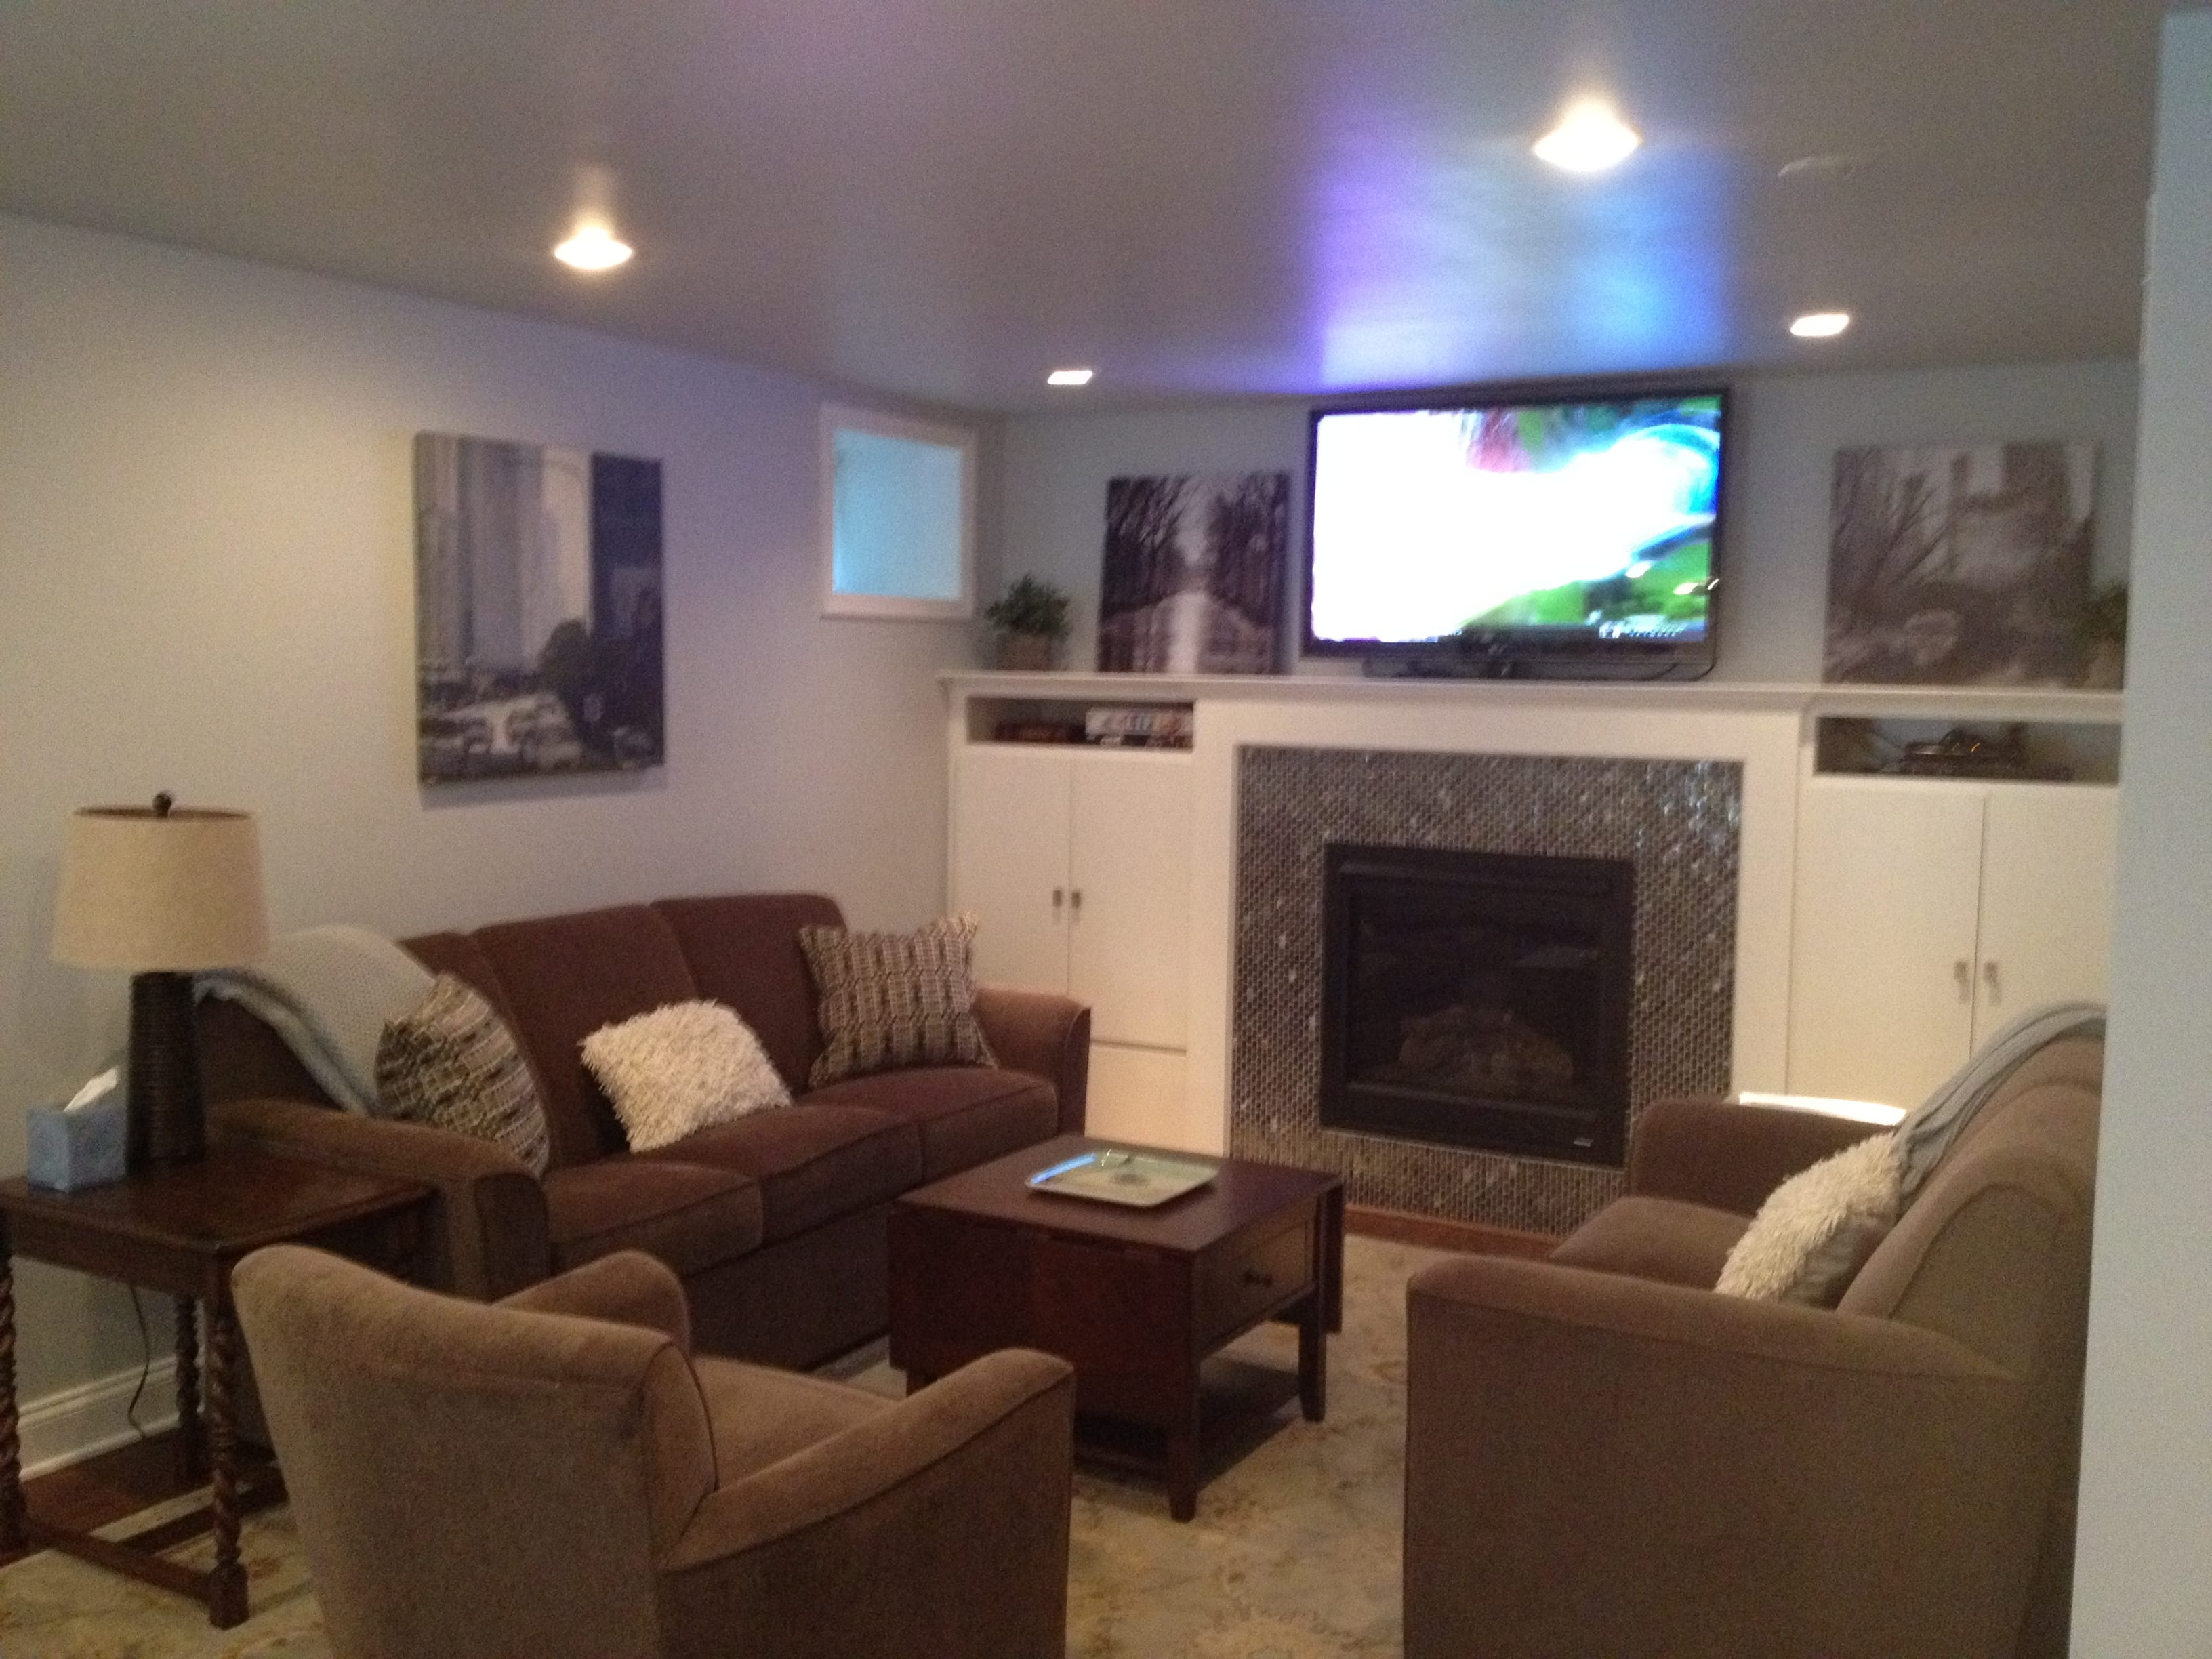 Basement with couches and television